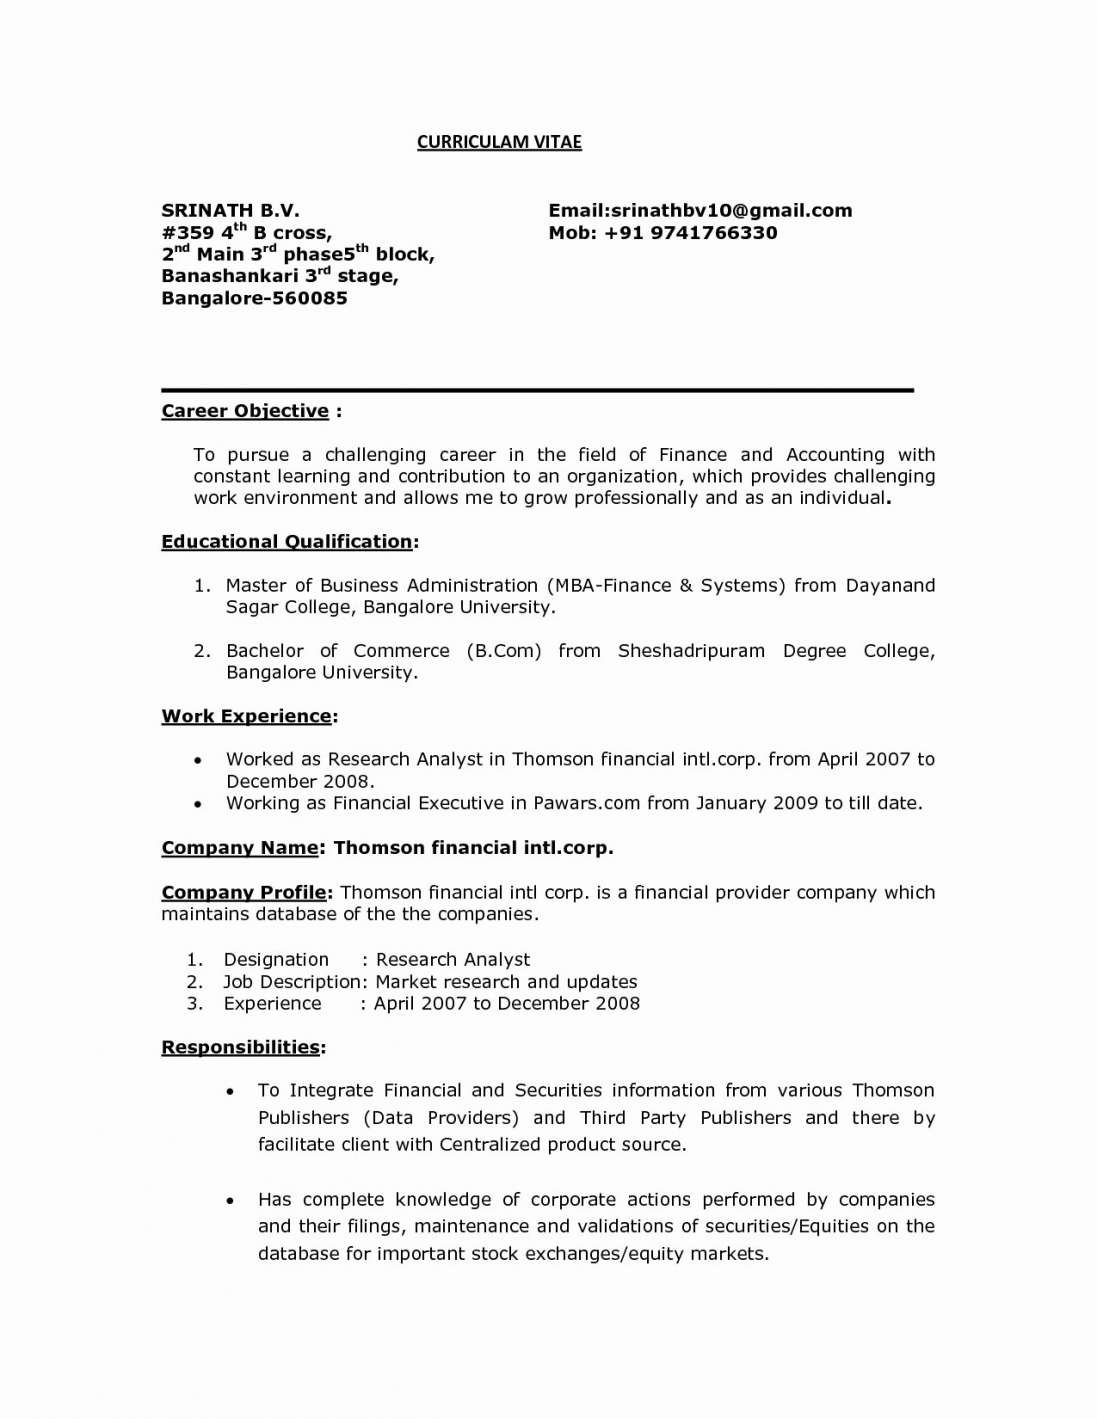 Resume Format Objective